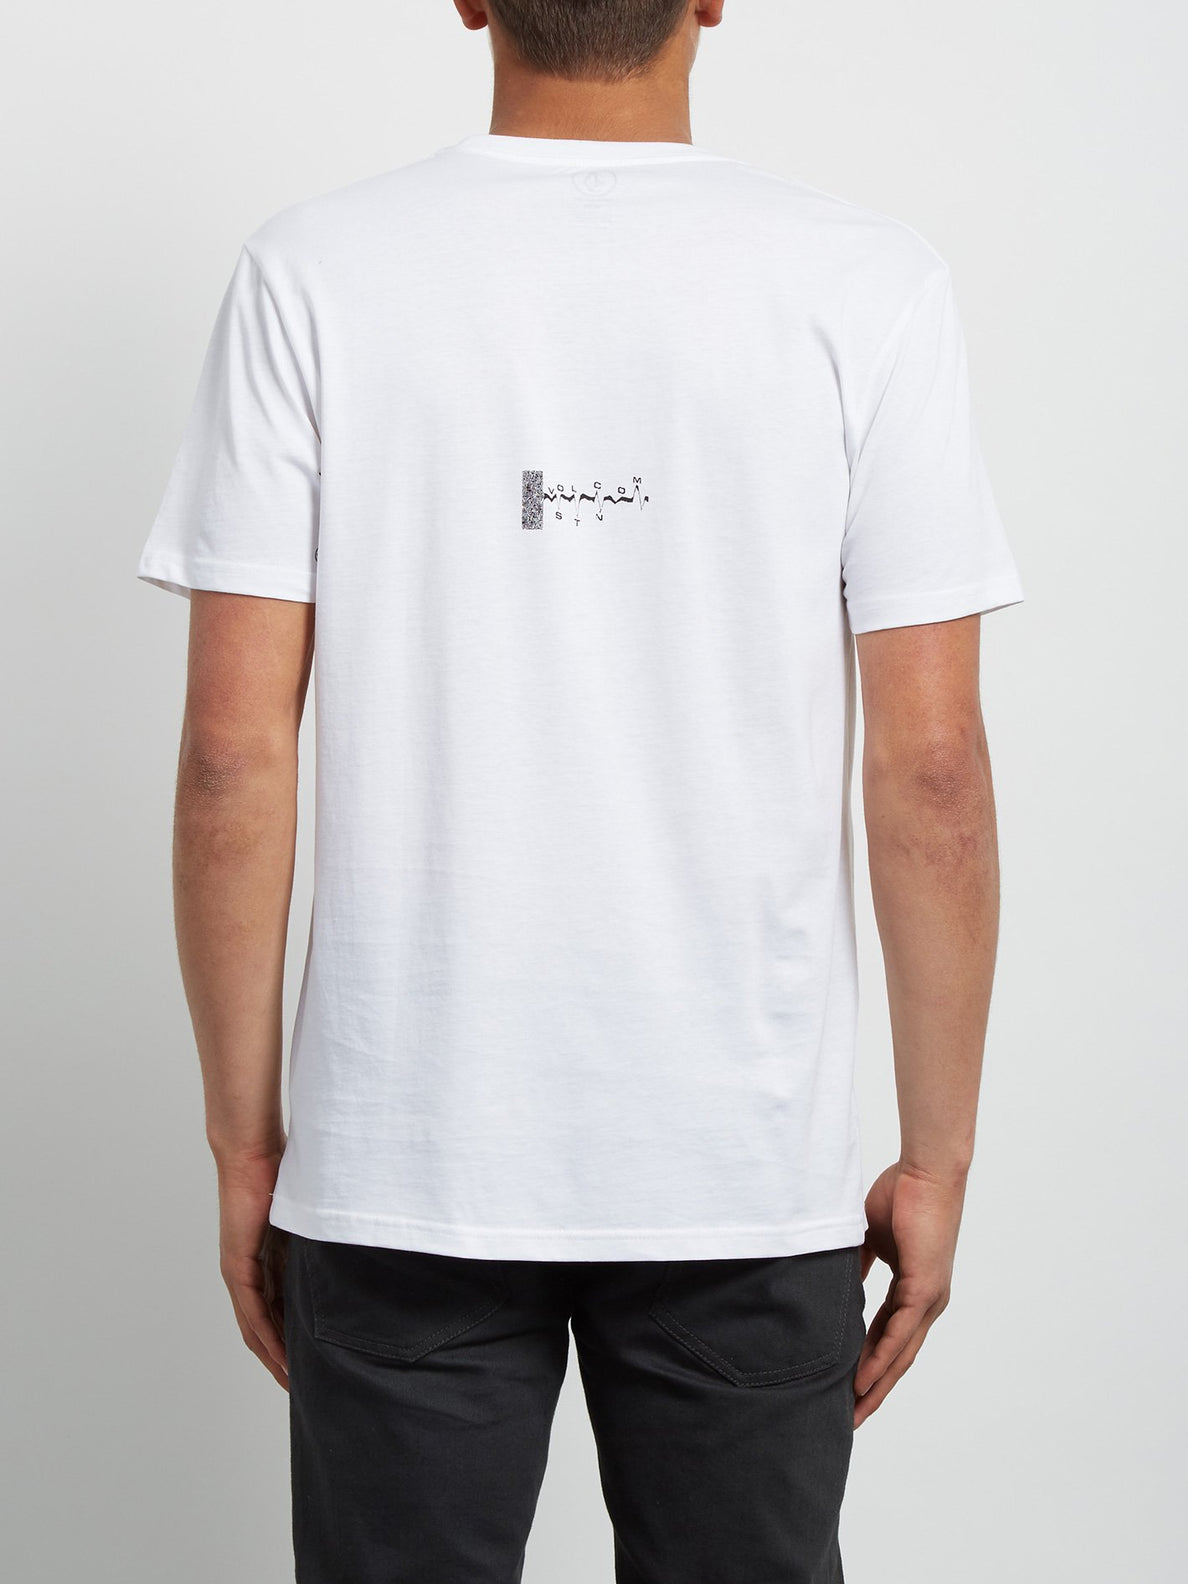 Digital Redux Tee - White